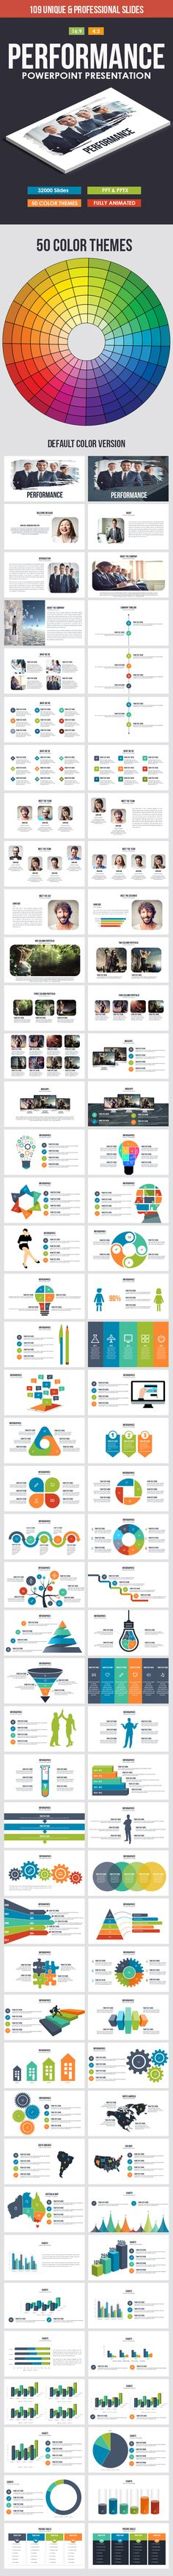 Performance Powerpoint  #simple #modern • Download ➝ https://graphicriver.net/item/performance-powerpoint-presentation-template/19532058?ref=pxcr